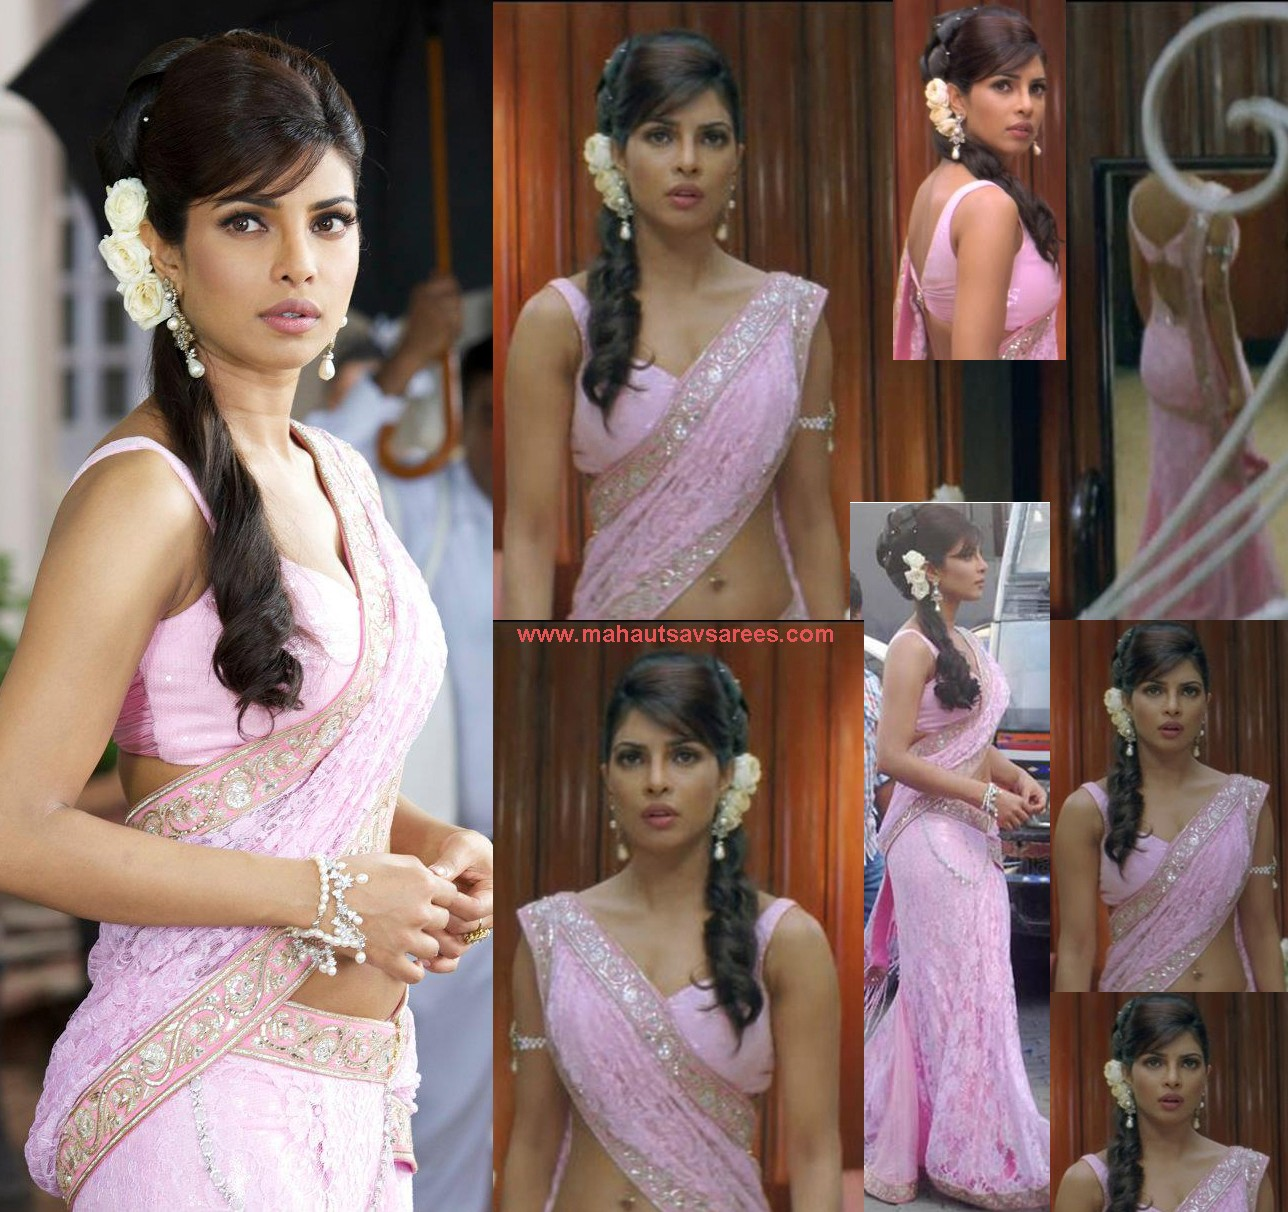 Priyanka Chopra in pink saree, Priyanka Chopra in Saree in Teri Meri Kahani Movie